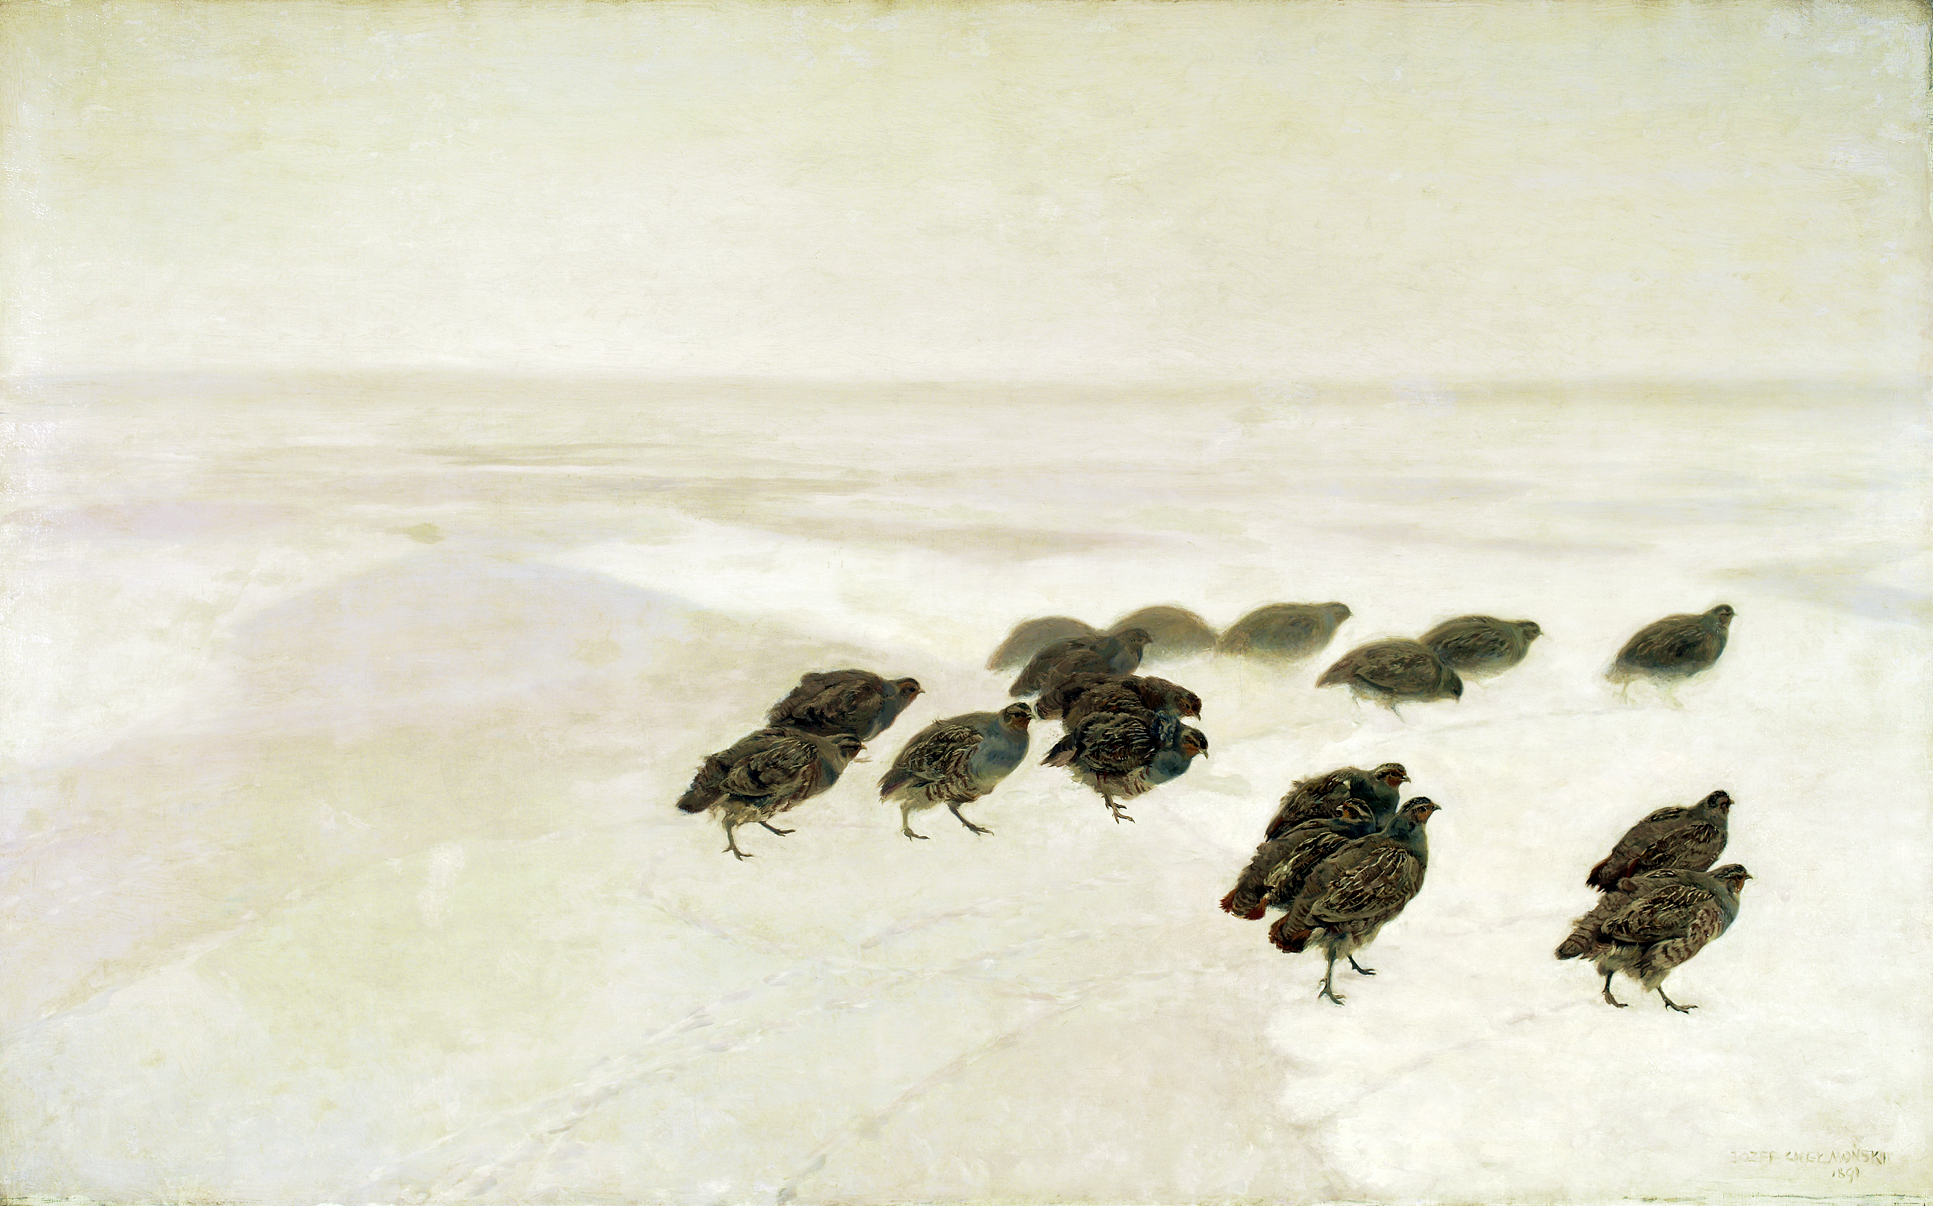 https://upload.wikimedia.org/wikipedia/commons/5/57/Che%C5%82mo%C5%84ski_Partridges_in_the_snow.png